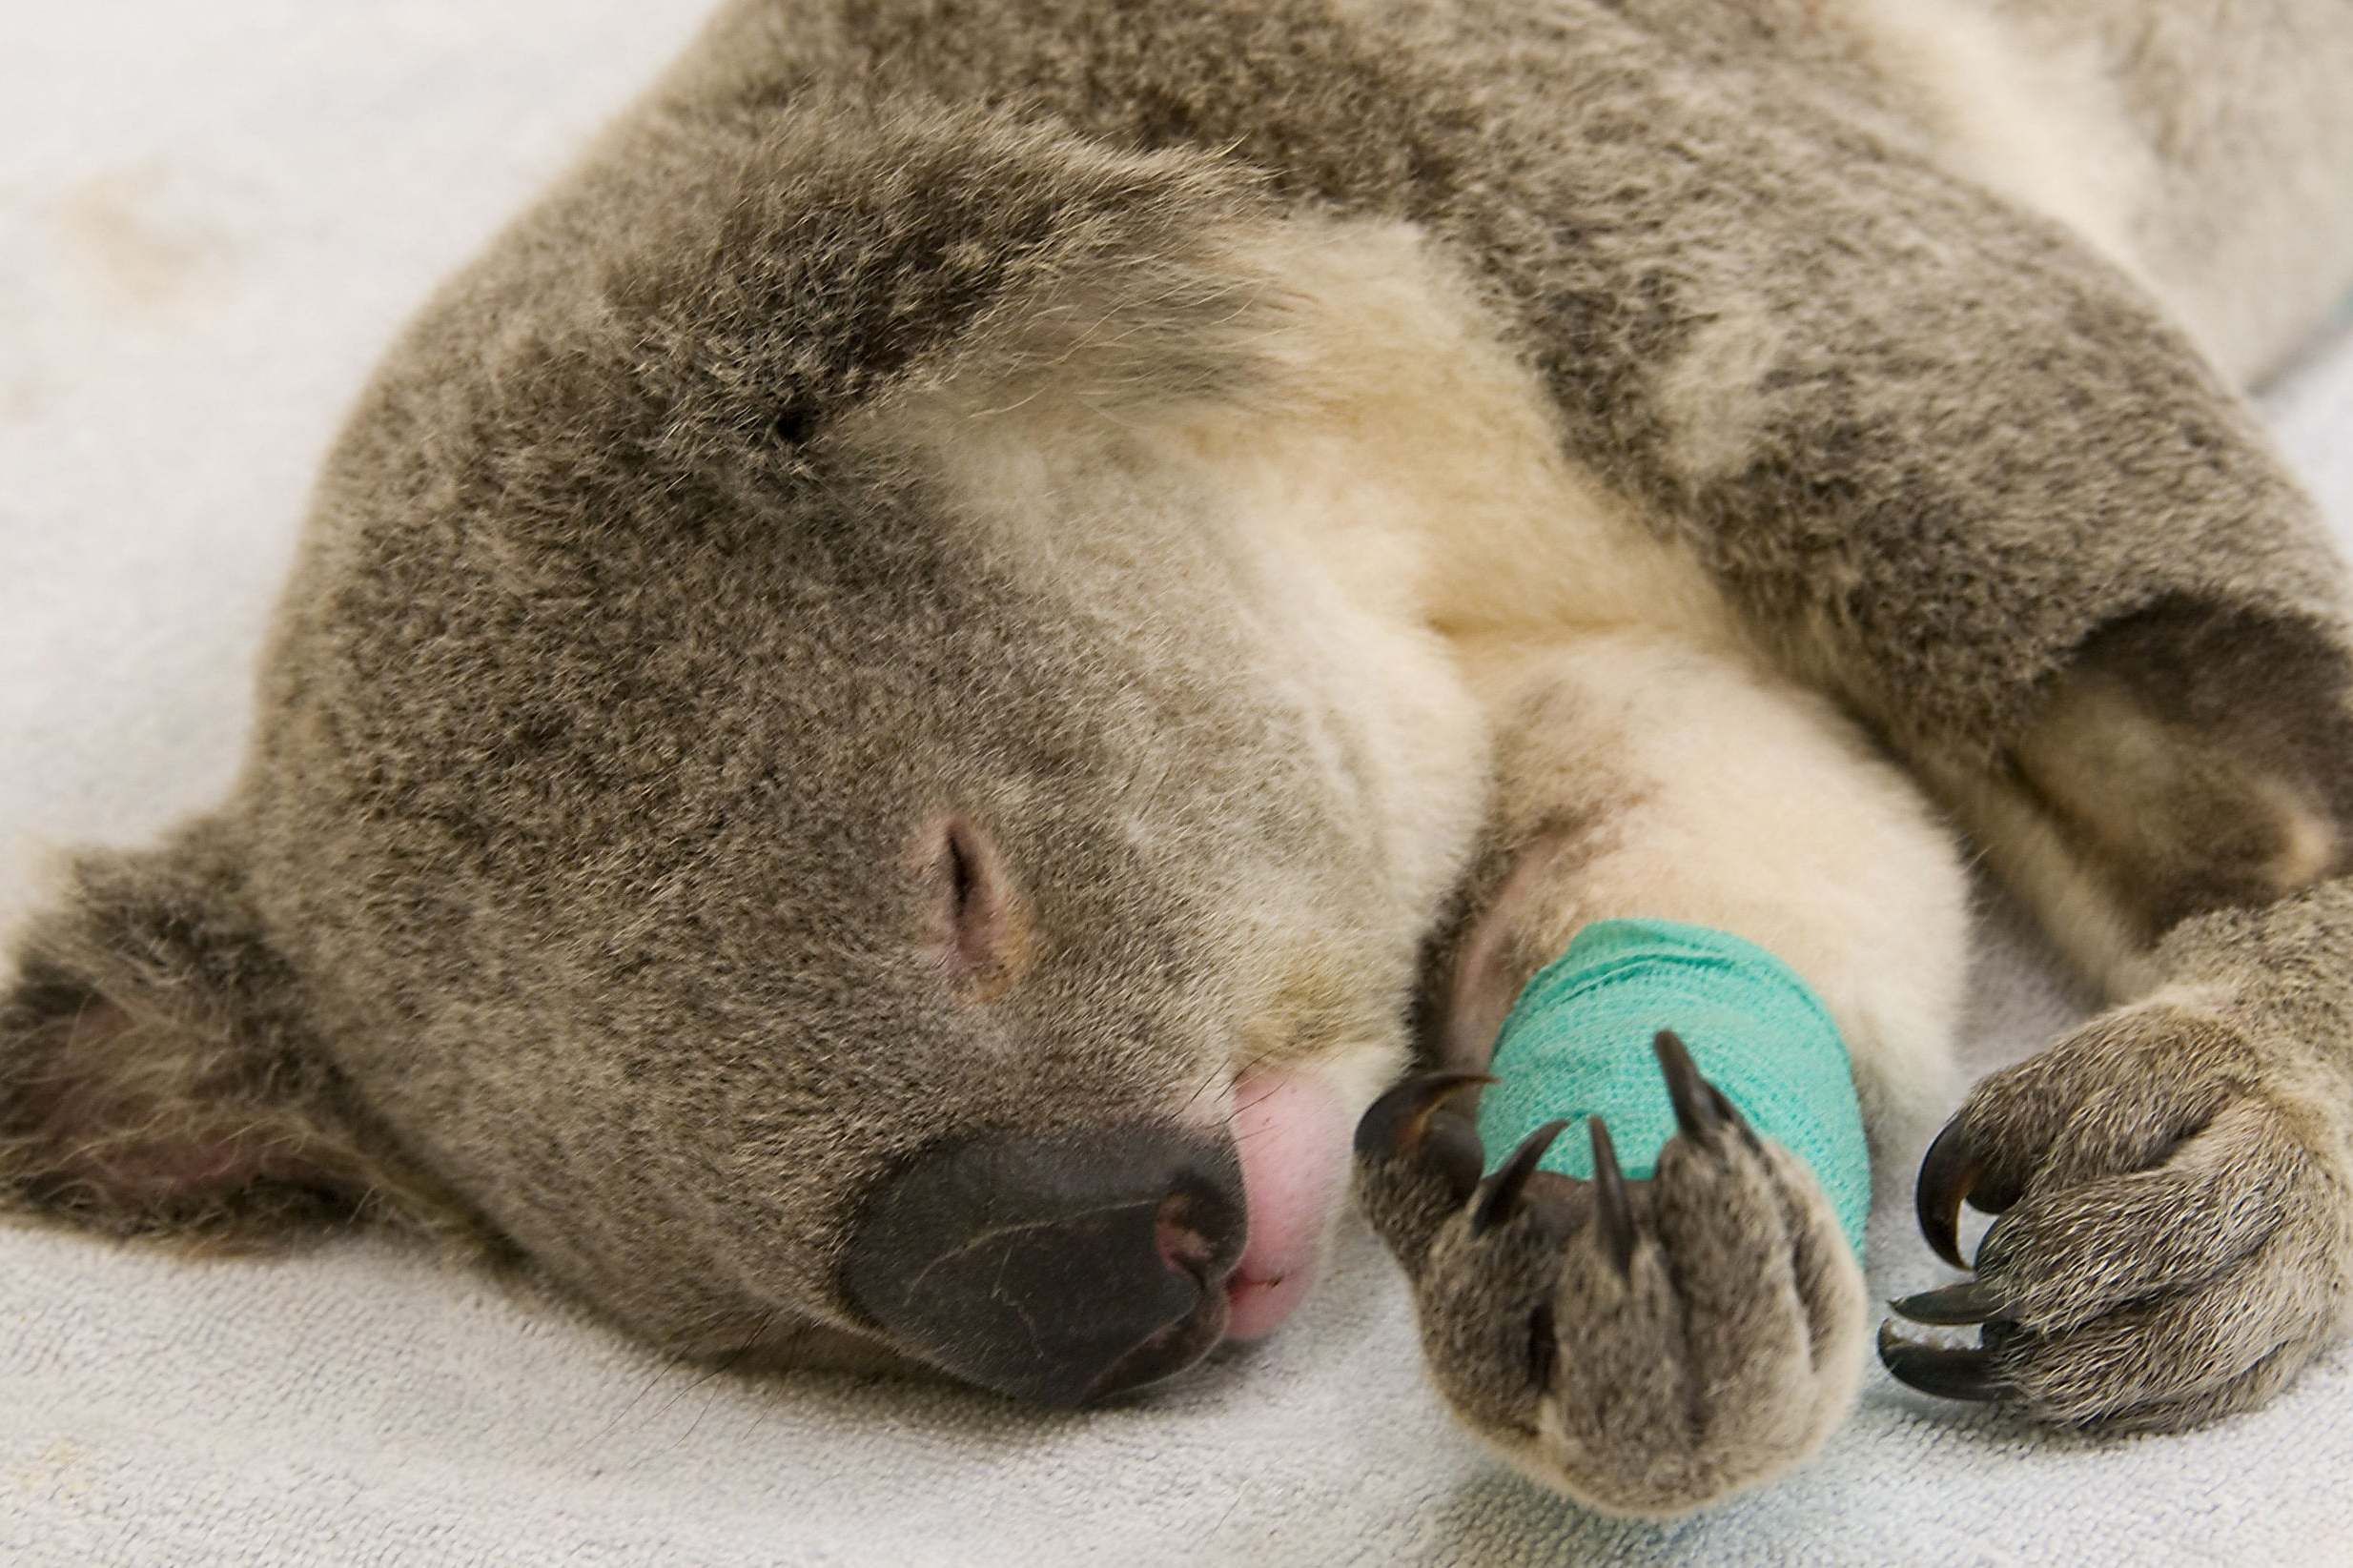 Could DNA editing help stop viruses that are slowly killing the world's koalas?